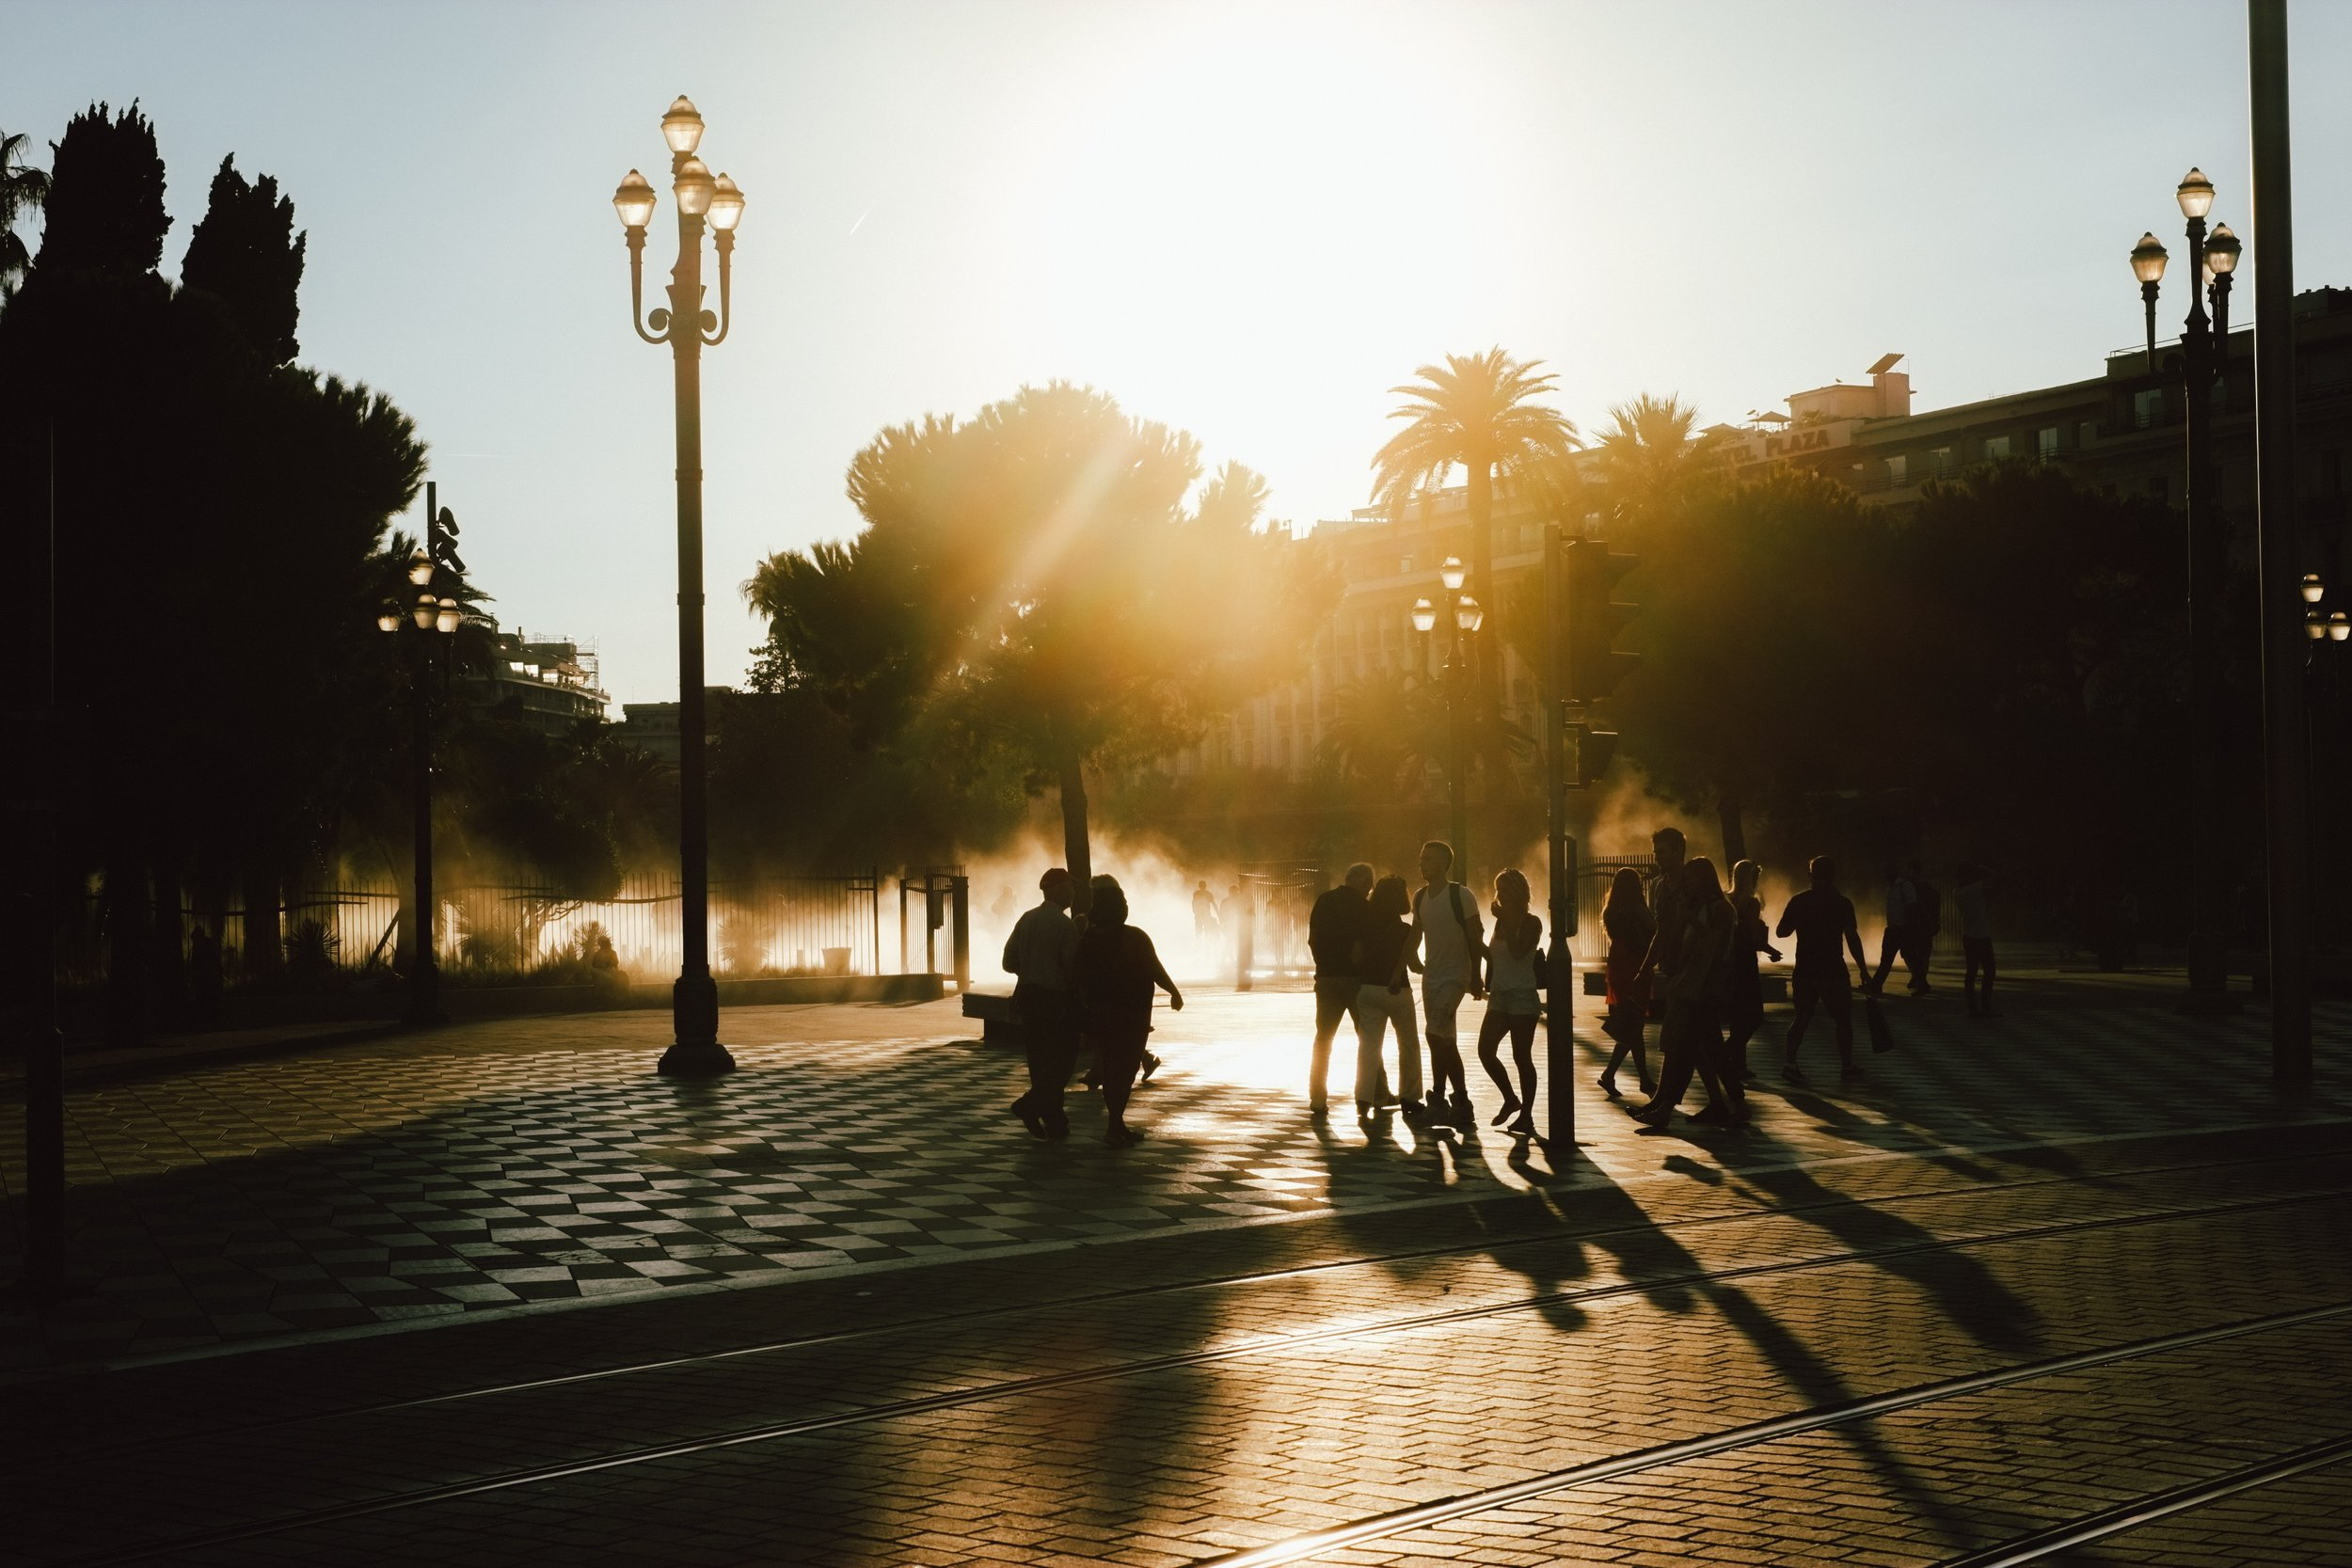 shadows of people on the street at sunset